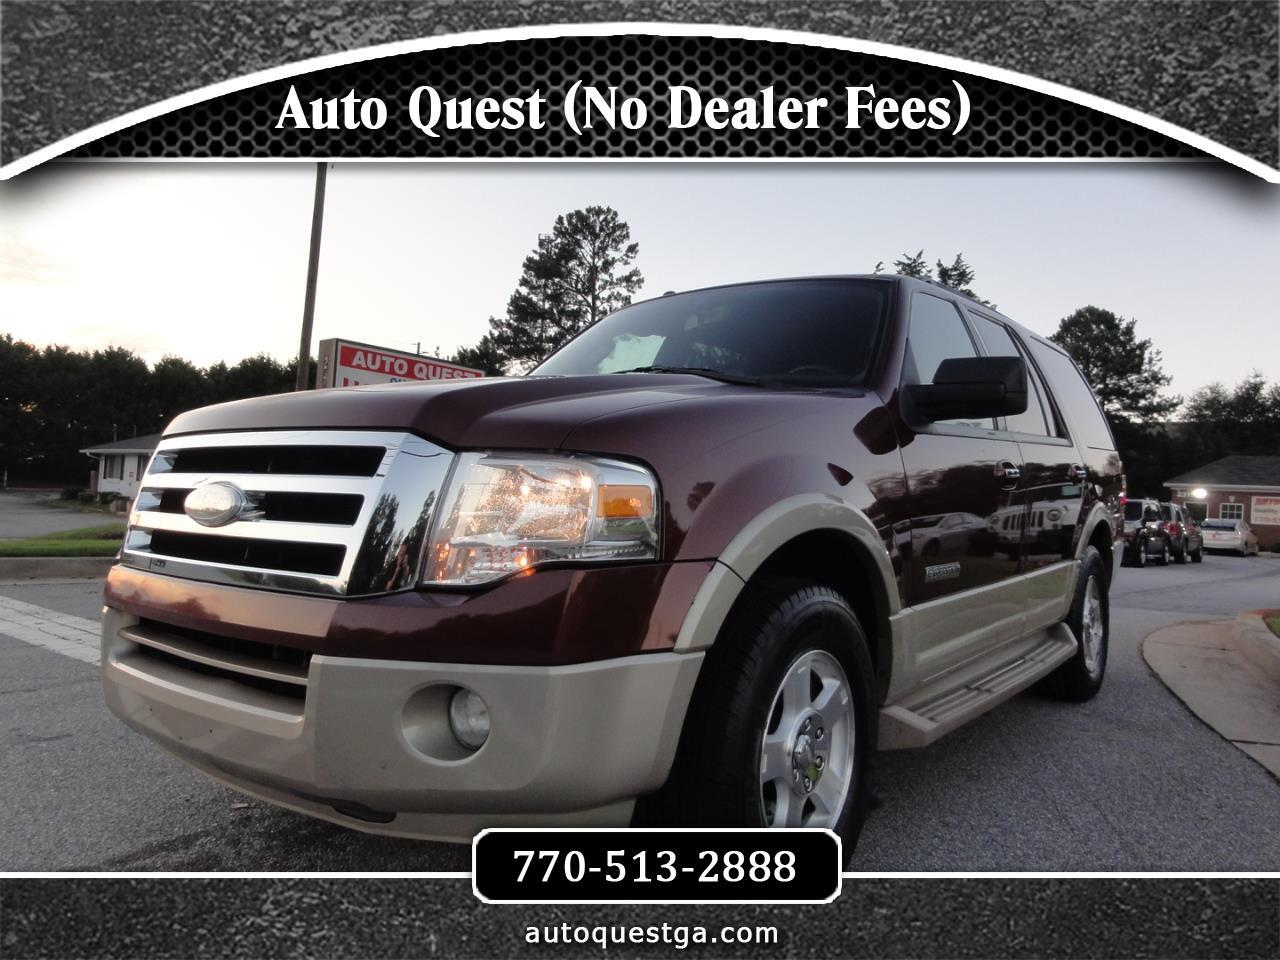 Ford Expedition 2WD 4dr Eddie Bauer 2008